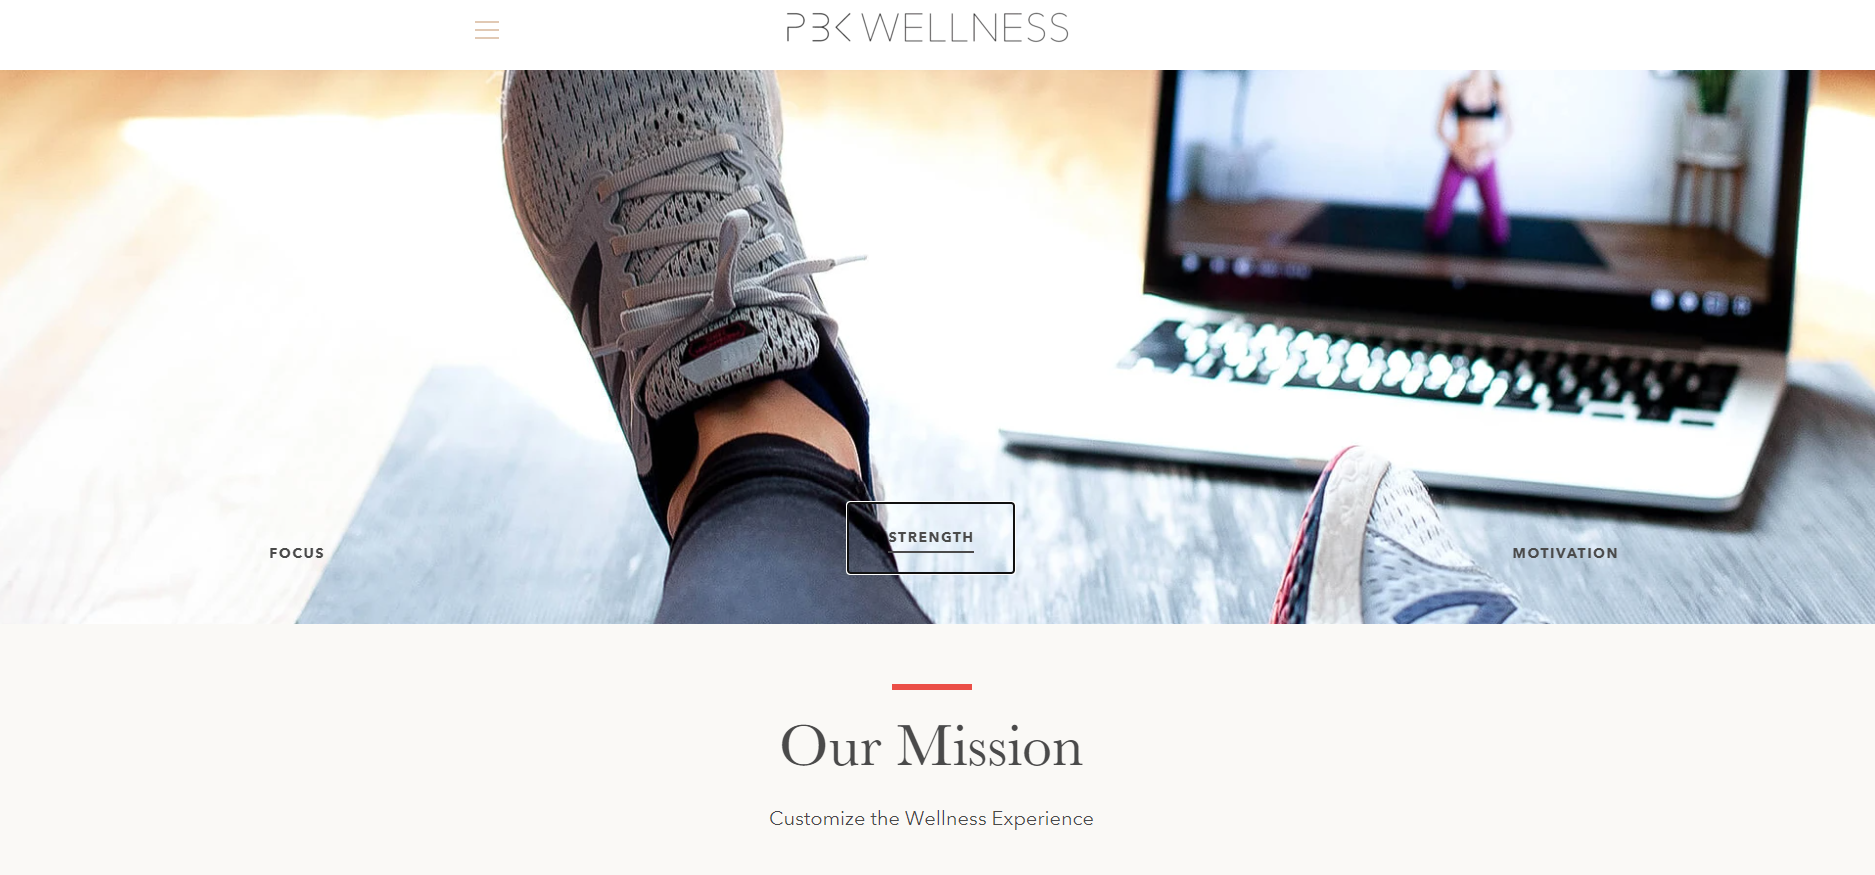 PBX Wellness